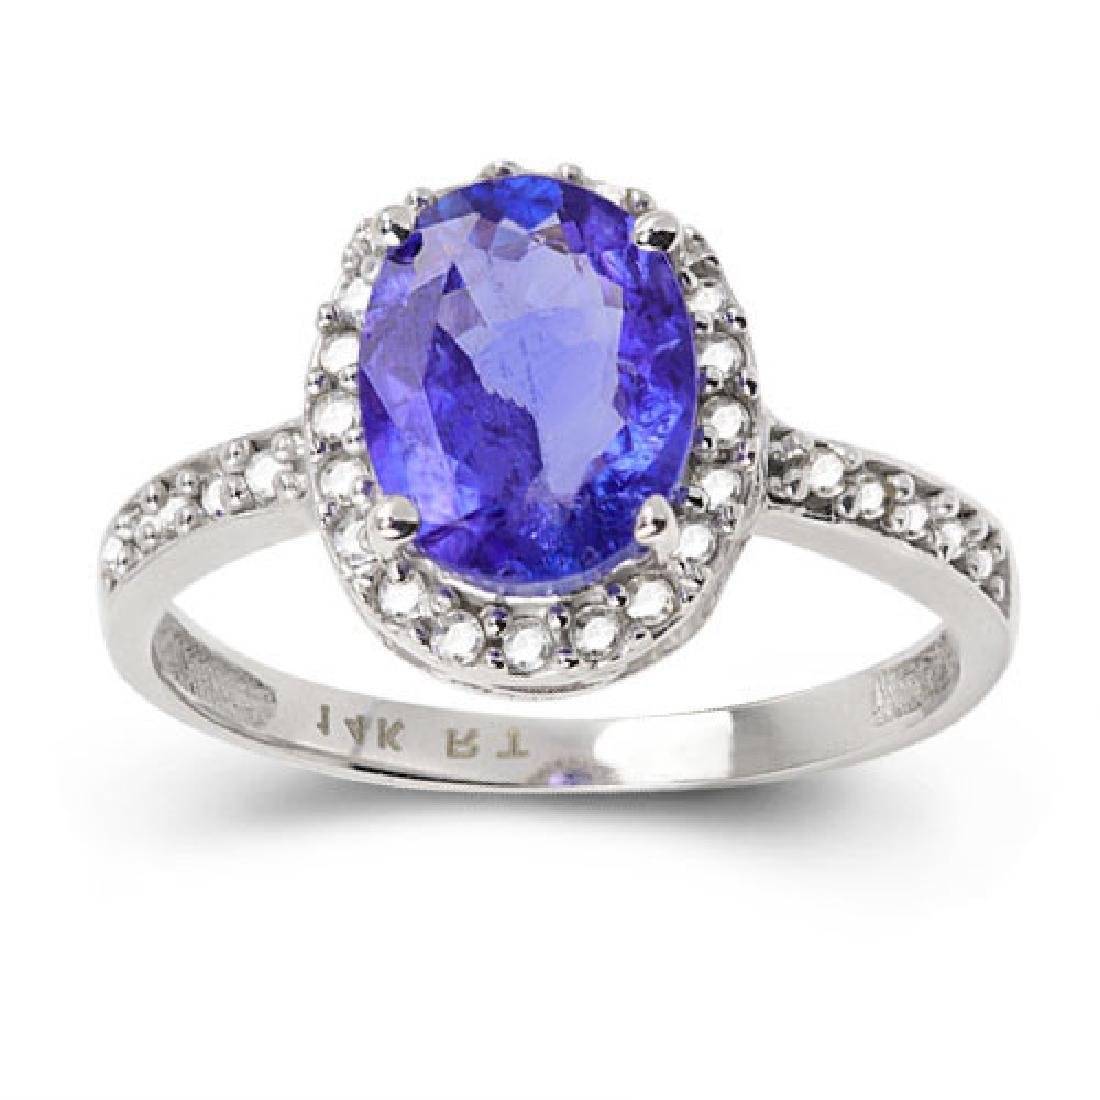 14K WHITE GOLD TANAZNITE 1.9 CT RING WITH